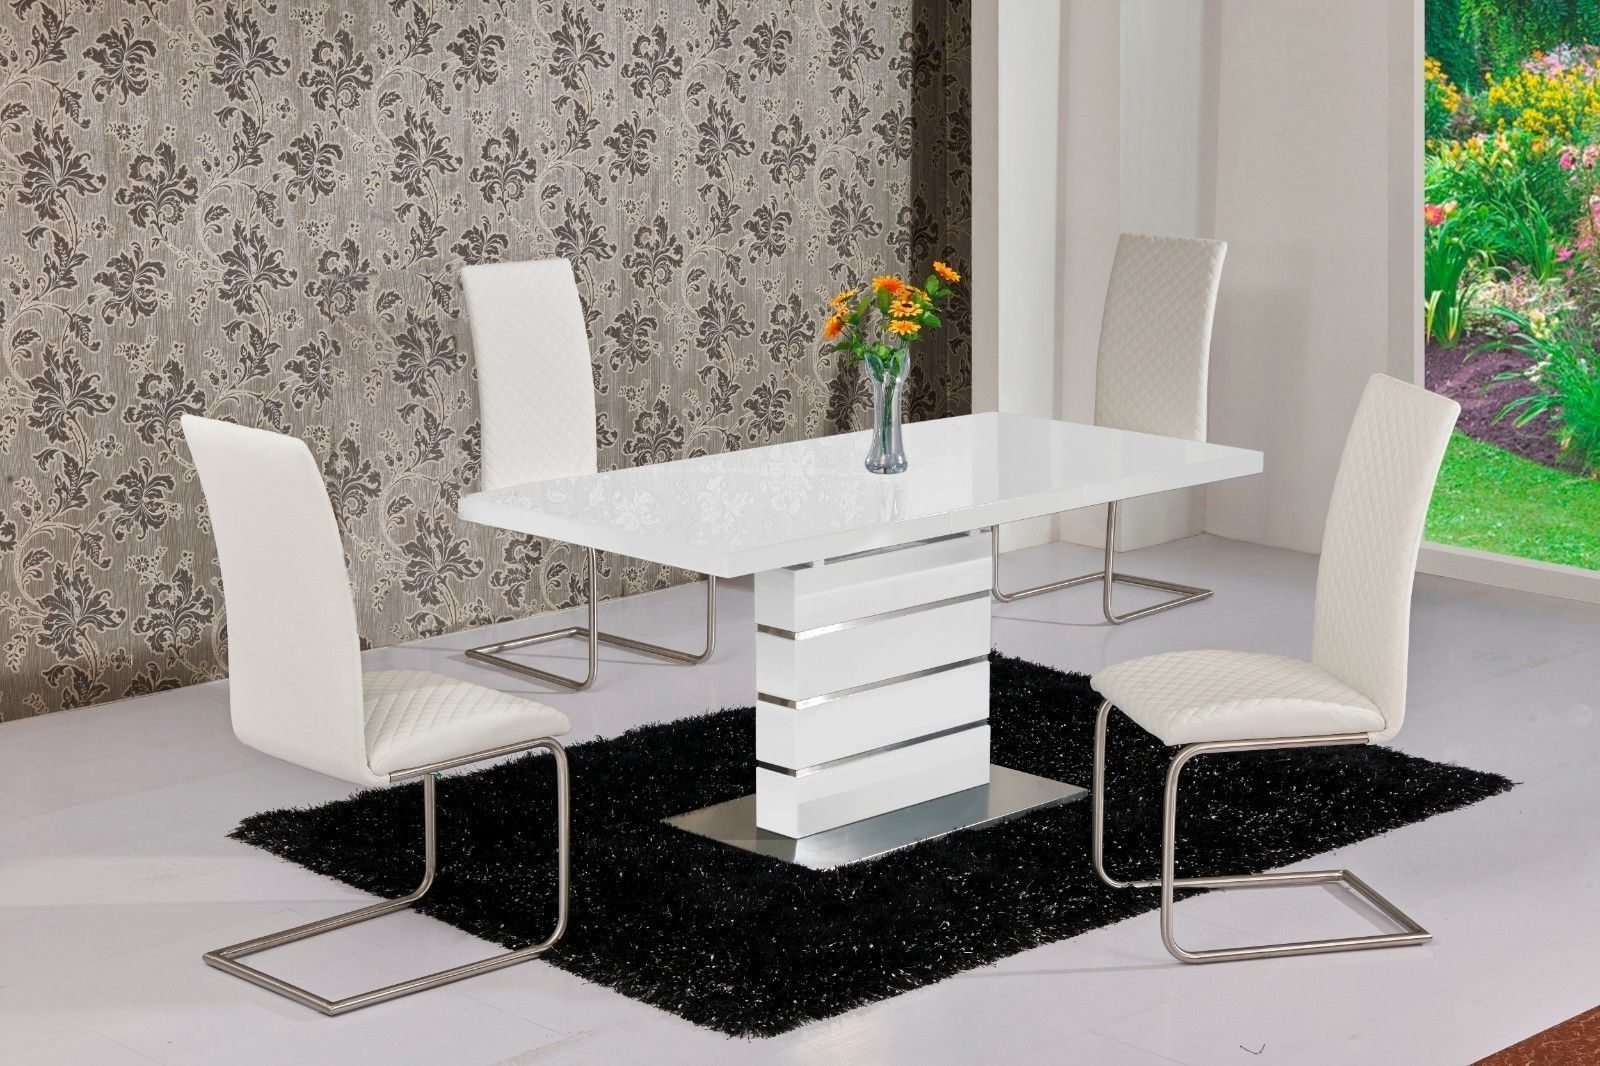 Widely Used Extending Black Dining Tables With Regard To Mace High Gloss Extending 120 160 Dining Table & Chair Set – White (View 25 of 25)